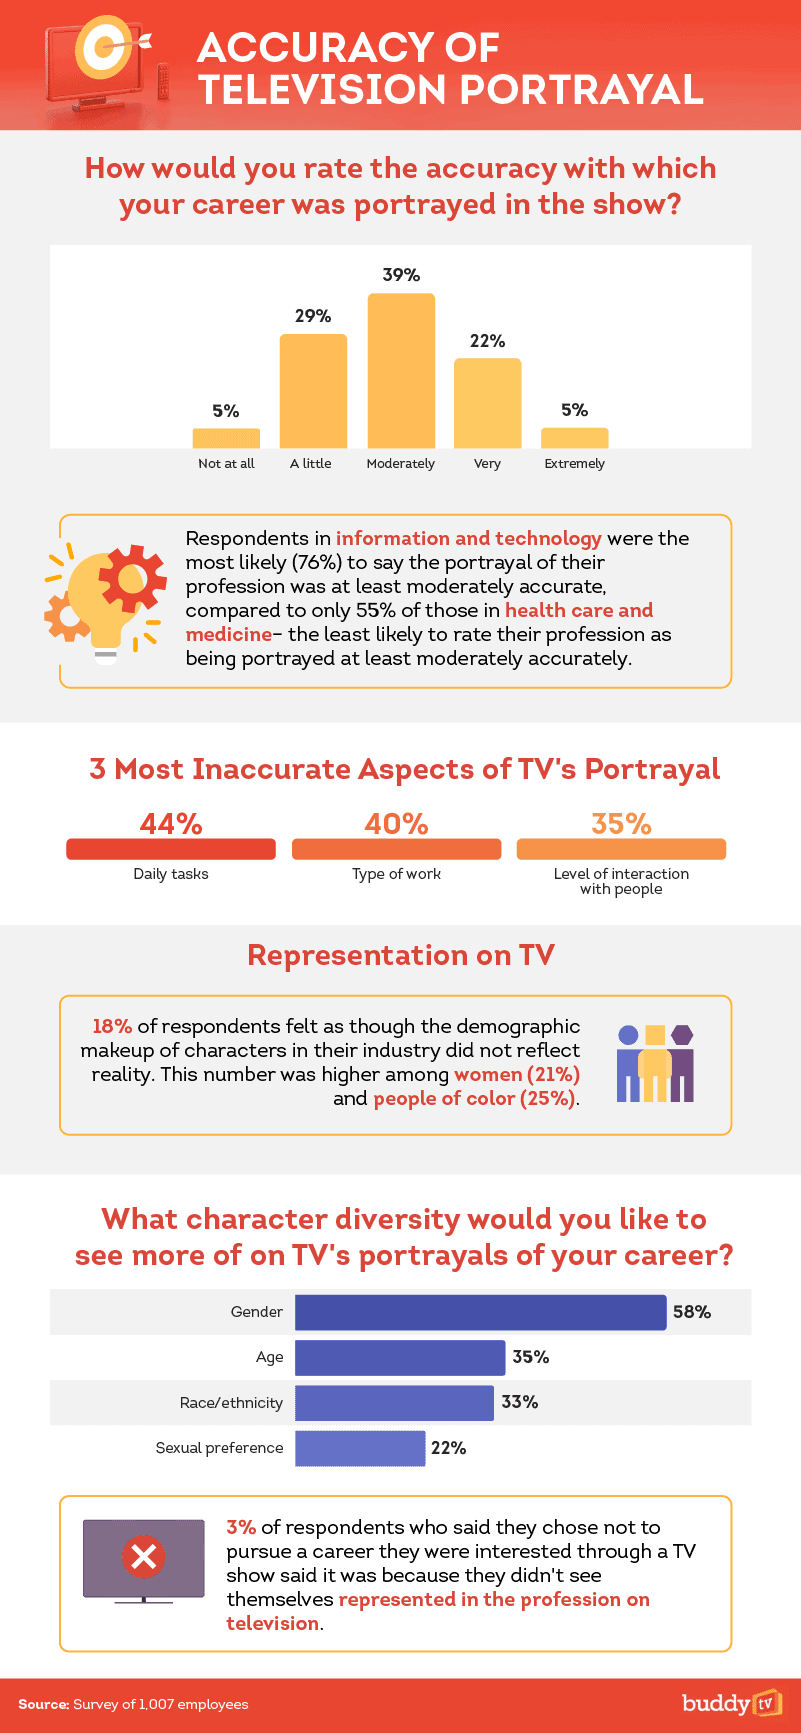 Accuracy of Television Portrayal